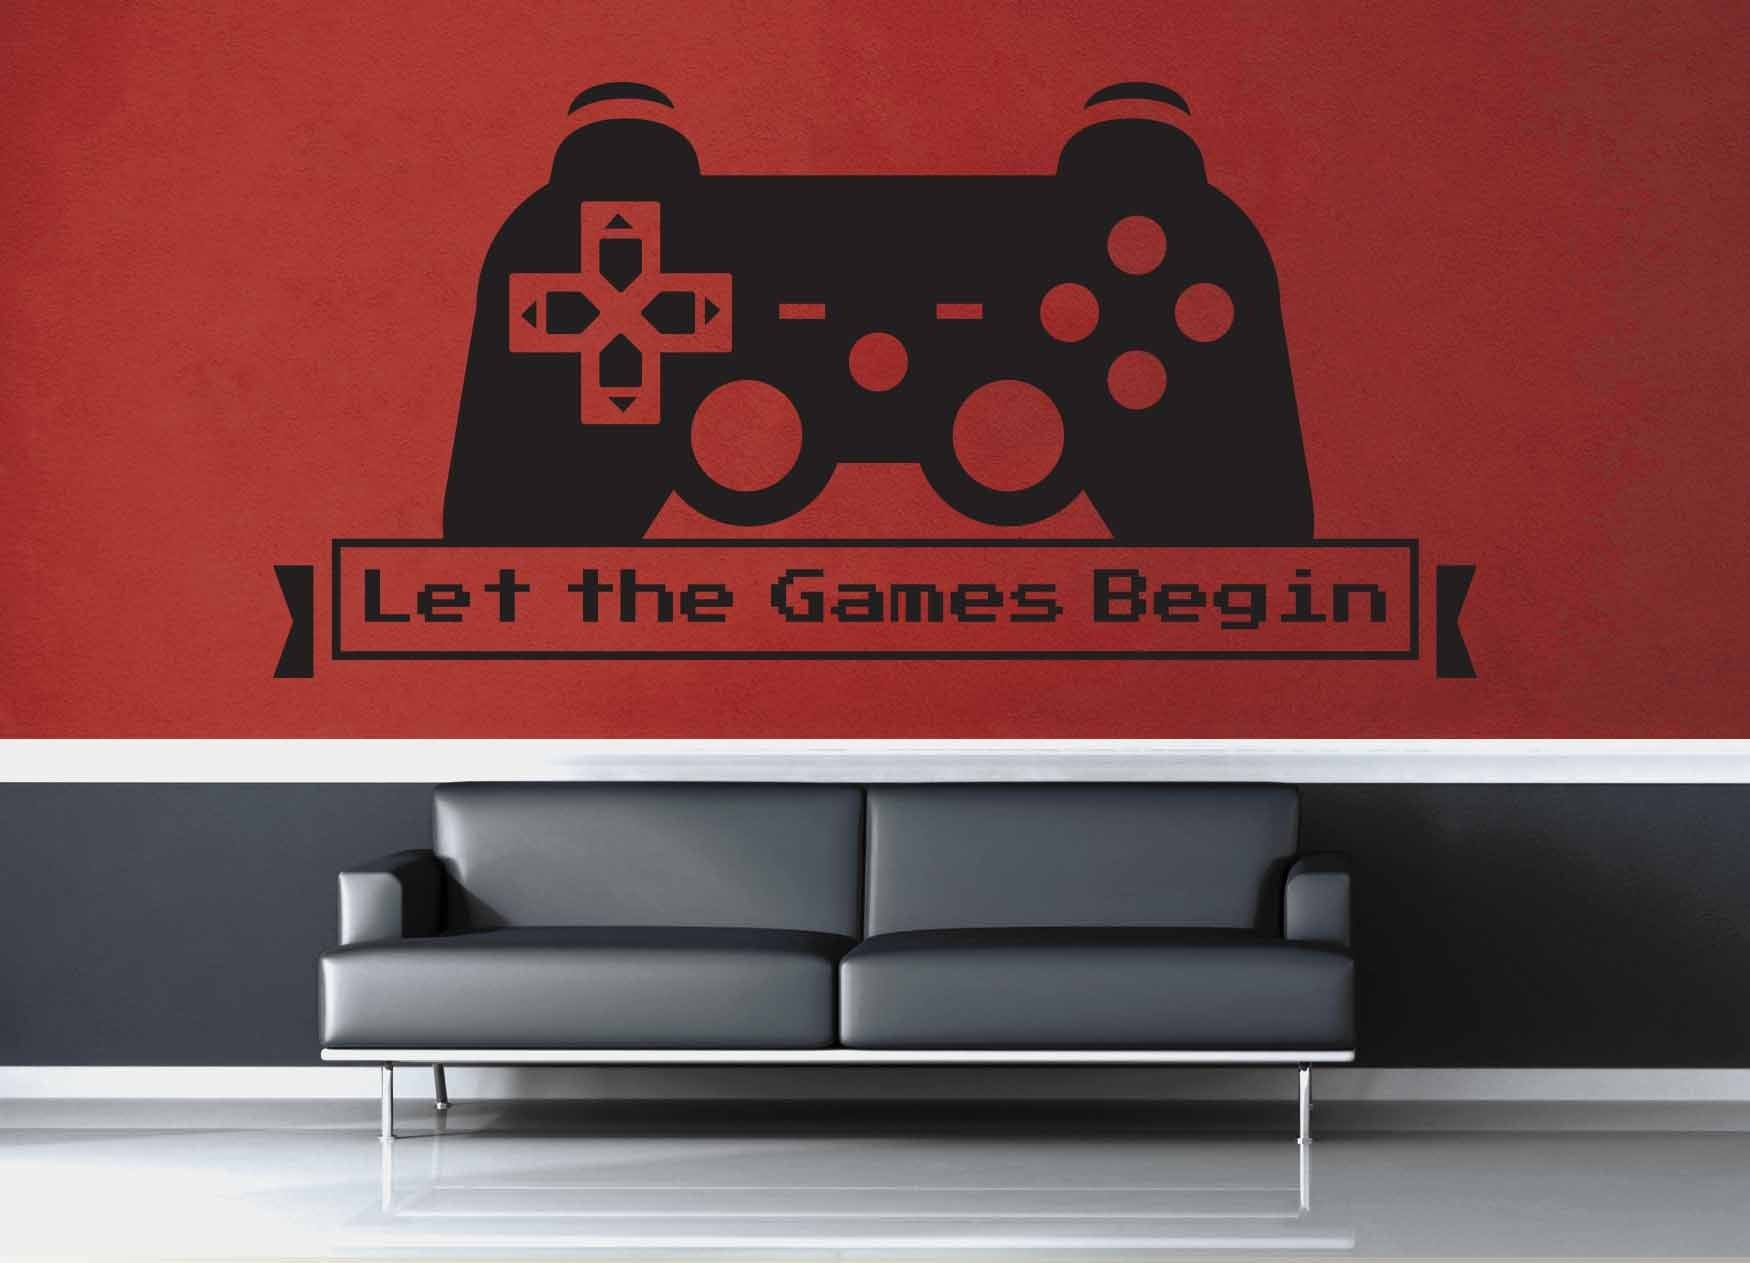 Let the Games Begin - Gamer Décor - Wall Decal